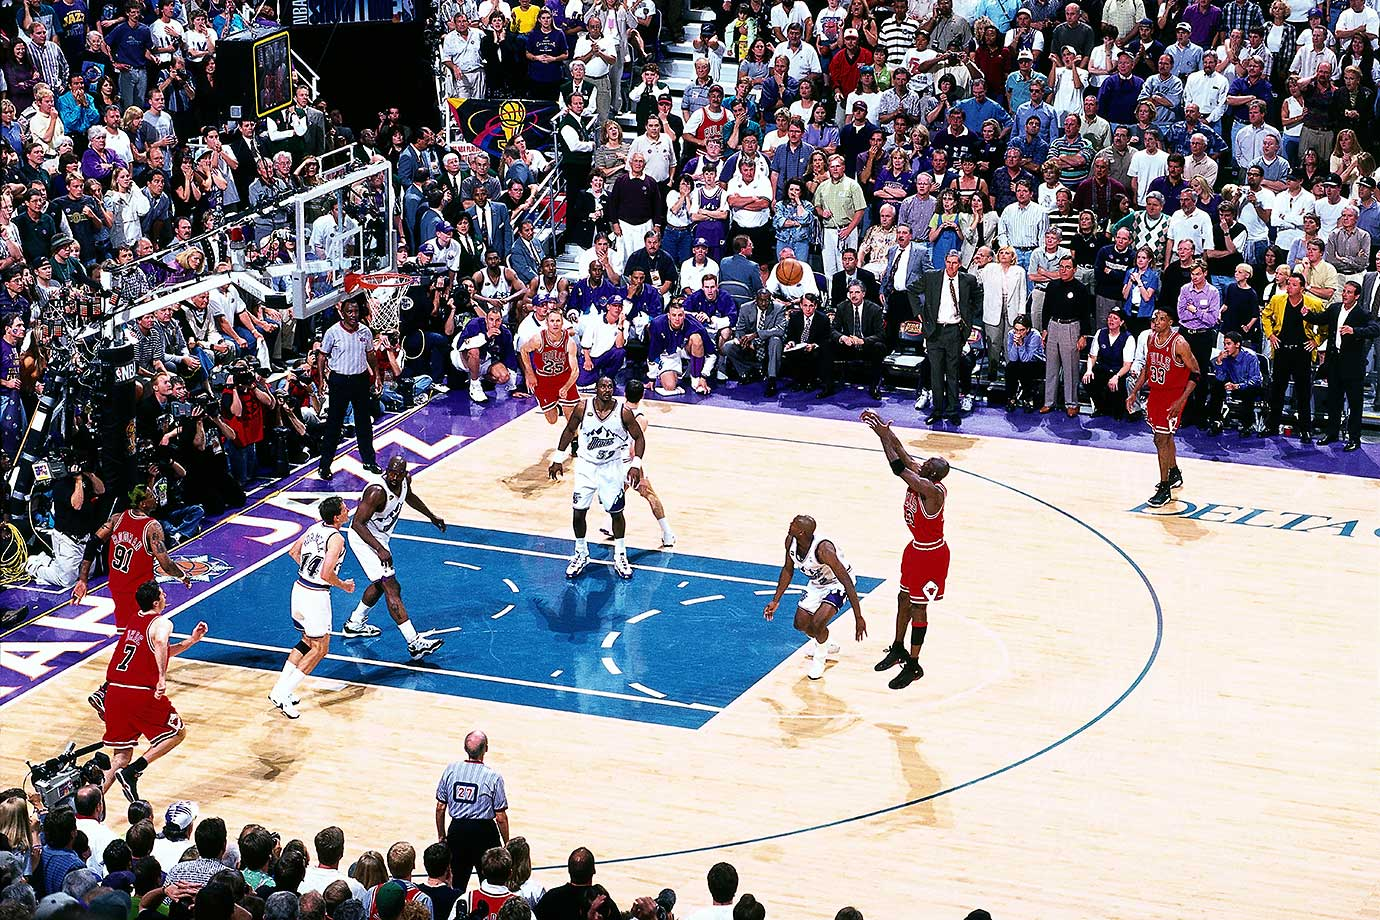 Though no official announcement had been made, most felt the 1997-98 season would be Jordan's last, and he wanted to go out on top. So with six seconds remaining in Game 6 of the NBA Finals, Jordan used a crossover dribble to fake out Byron Russell and nailed a 17-foot jumper to give the Bulls their sixth championship of the decade. Though he later returned to the NBA with the Washington Wizards, this was his last game with the Bulls.